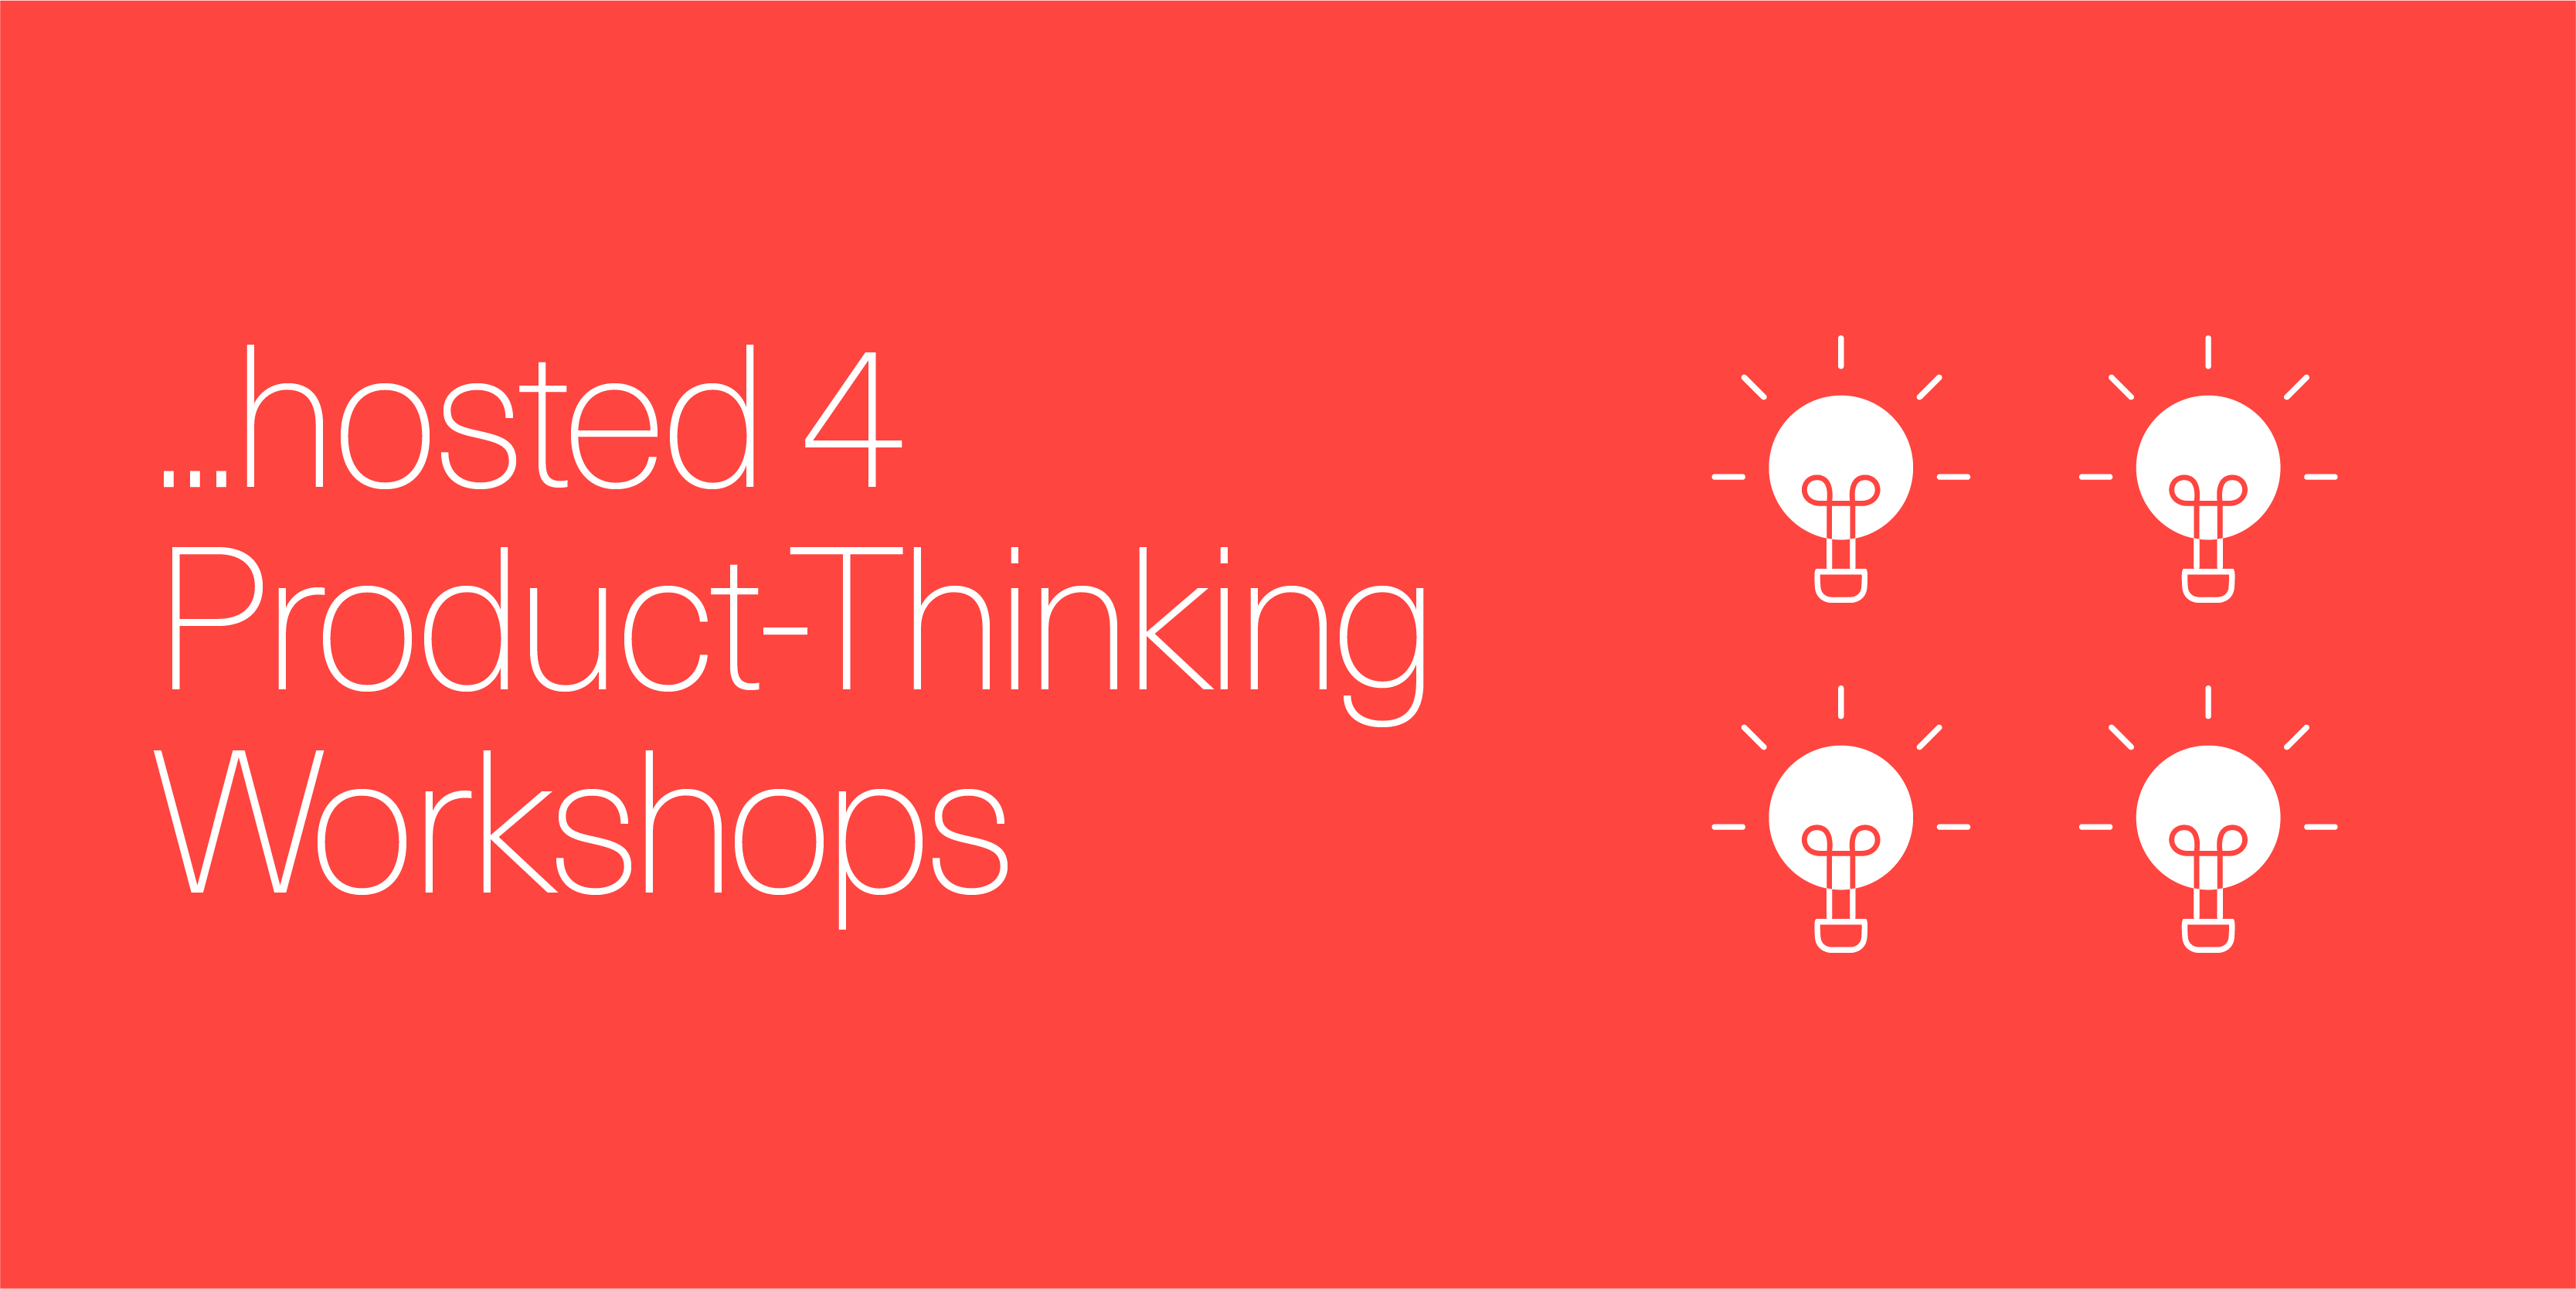 hosted 4 Product-Thinking Workshops